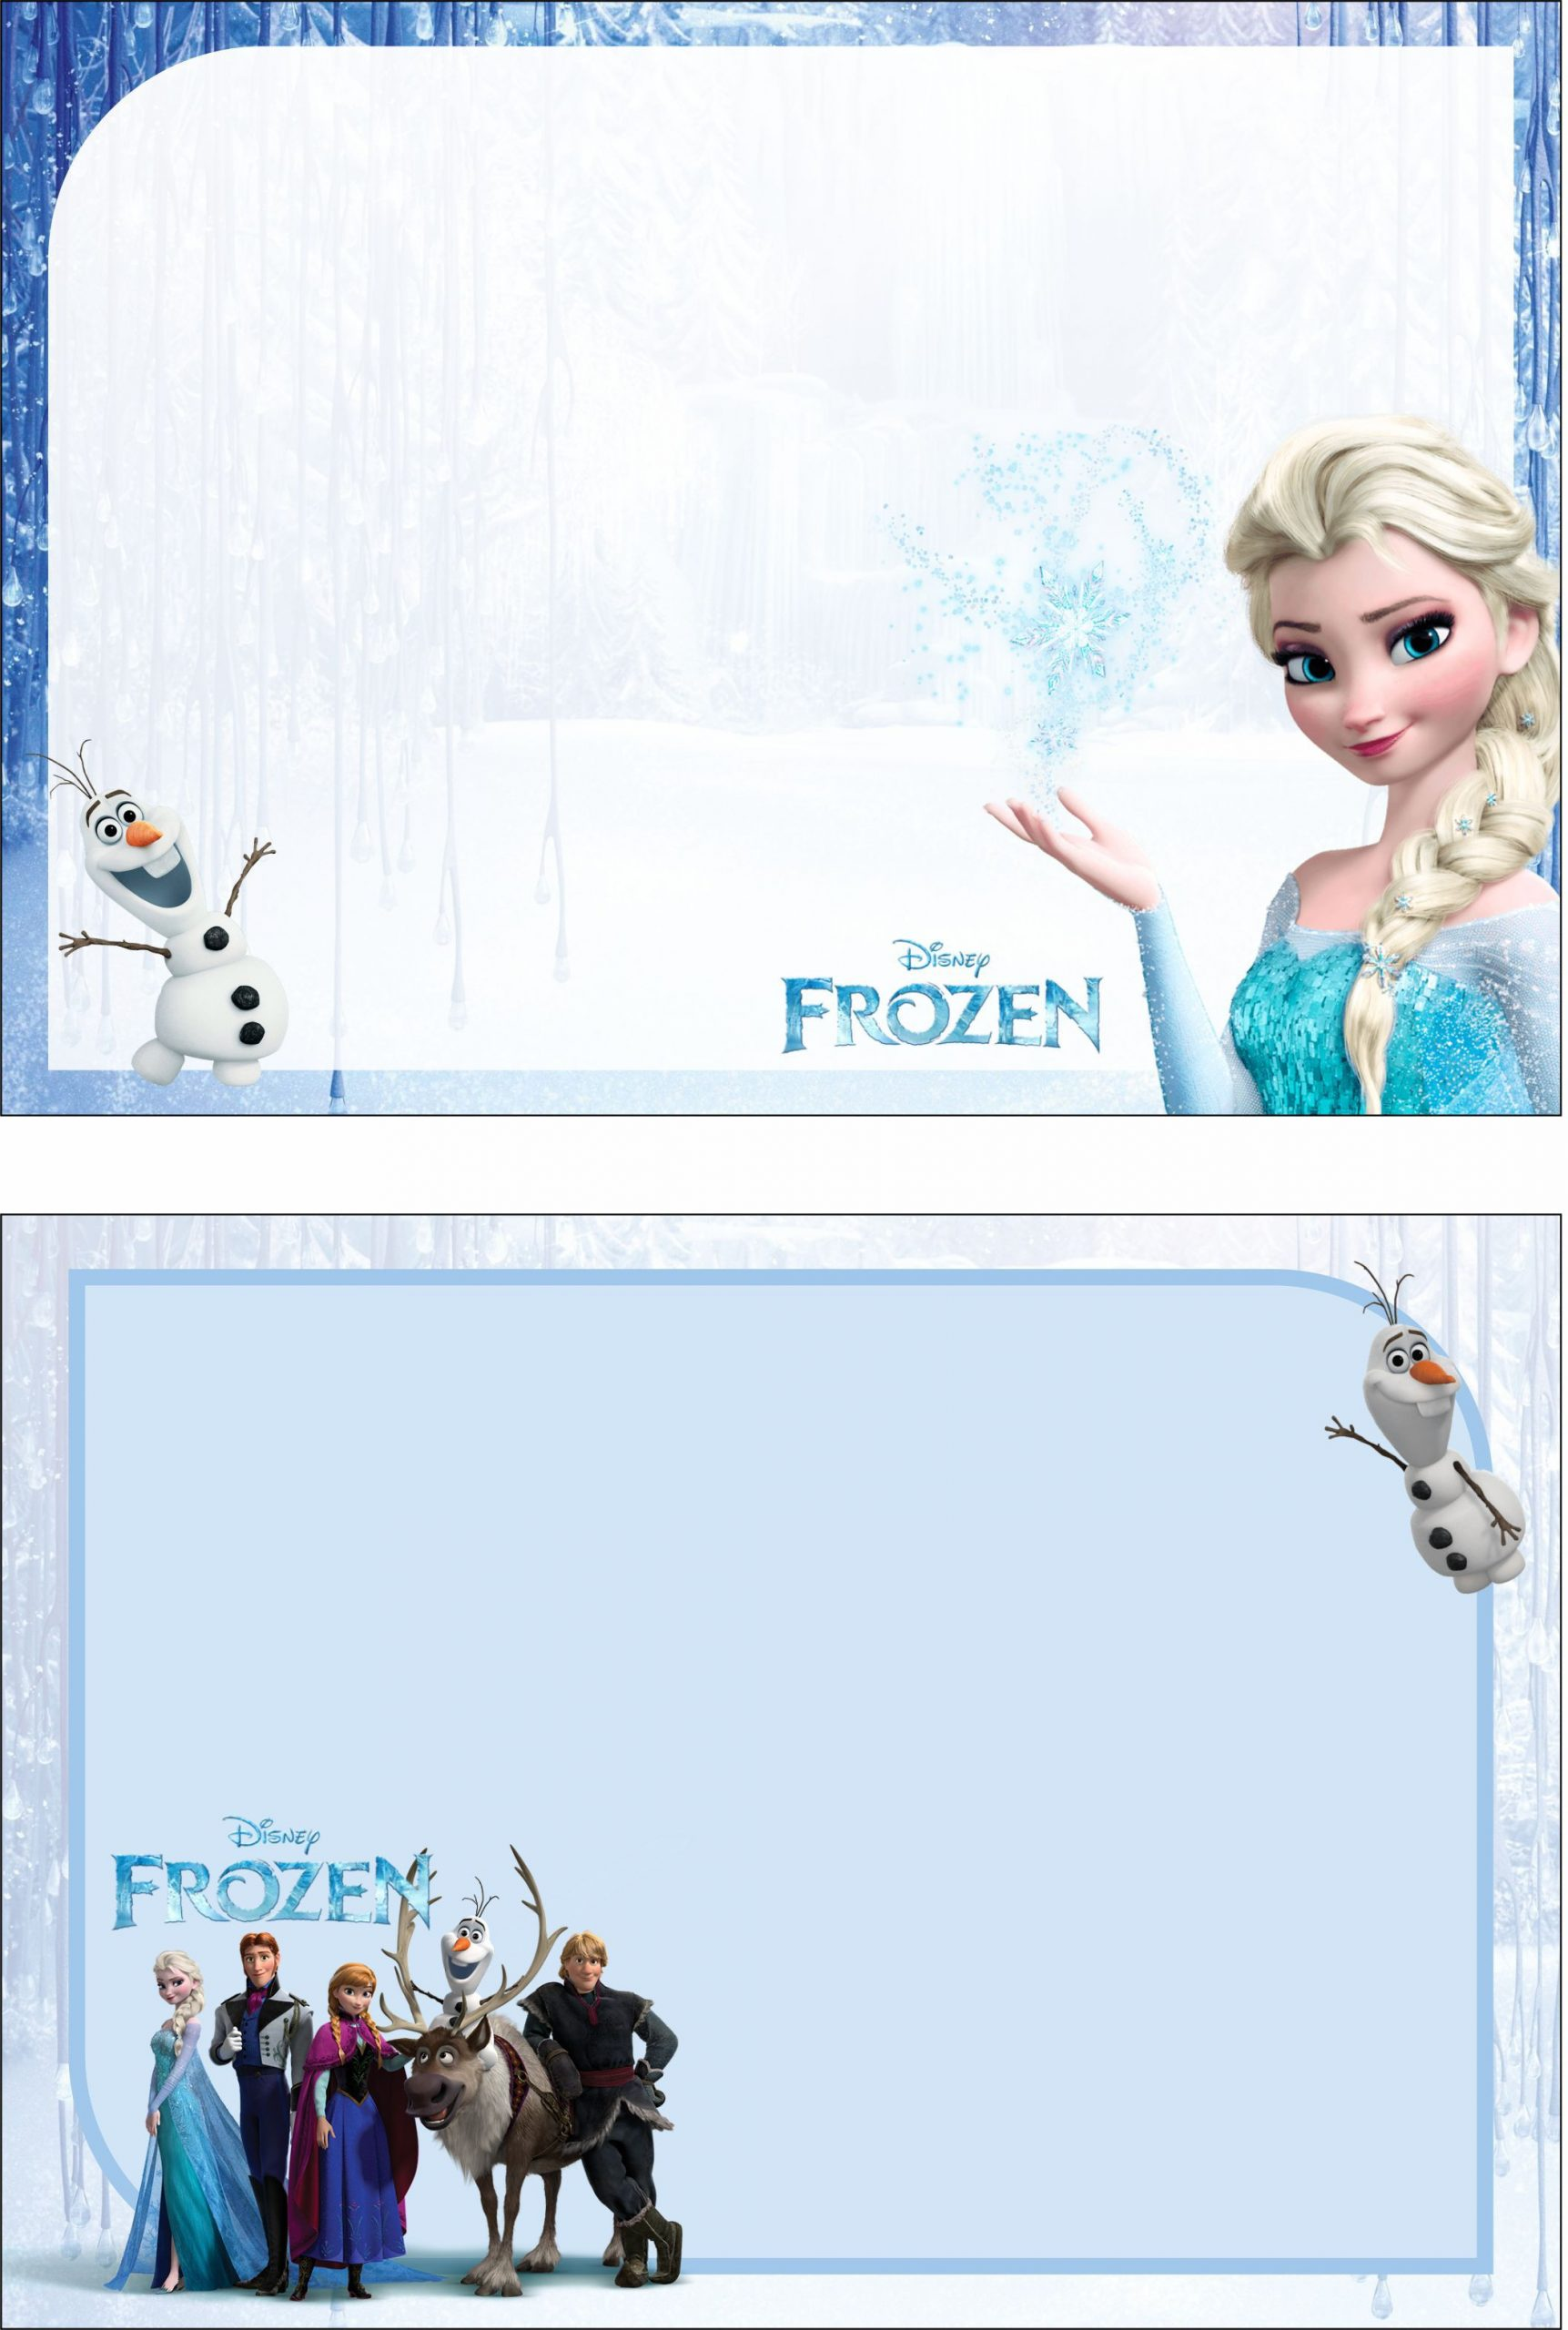 Frozen Printable Invitation Free Frozen 2 Birthday Party Kit Templates In 2020